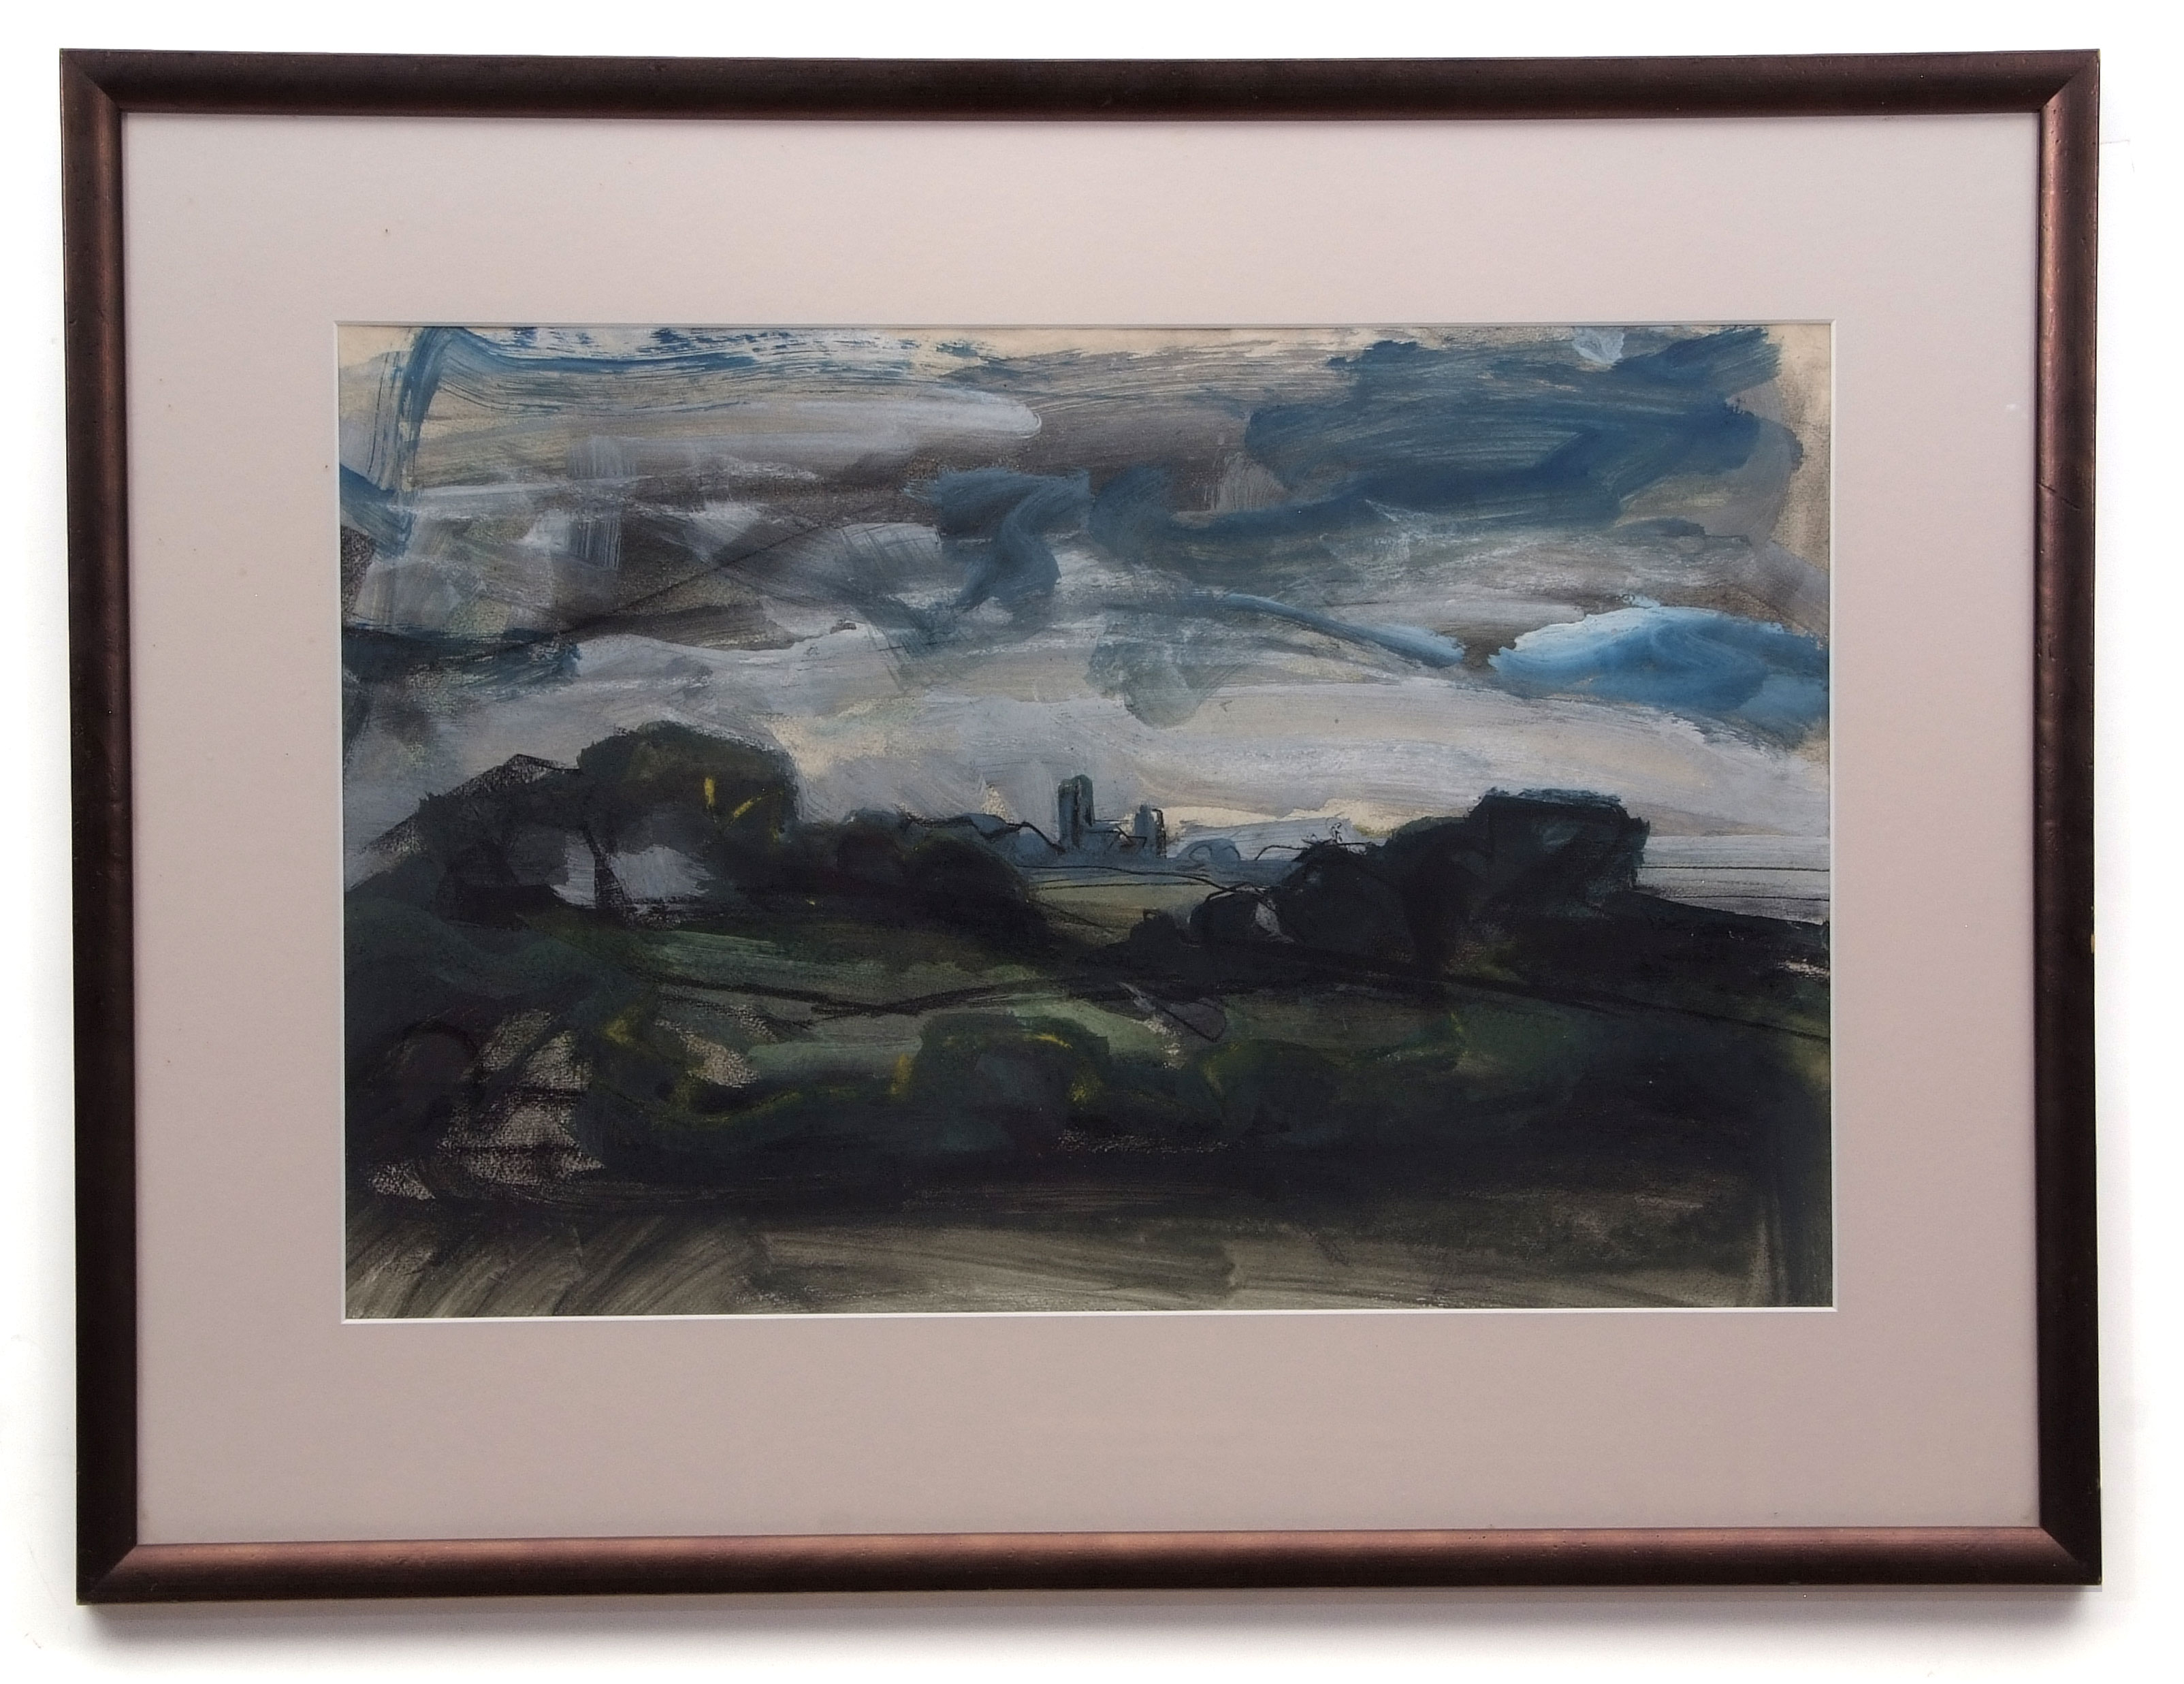 David Smith, Landscapes, coastal scenes etc, group of 13 watercolours, some signed, assorted - Image 6 of 13